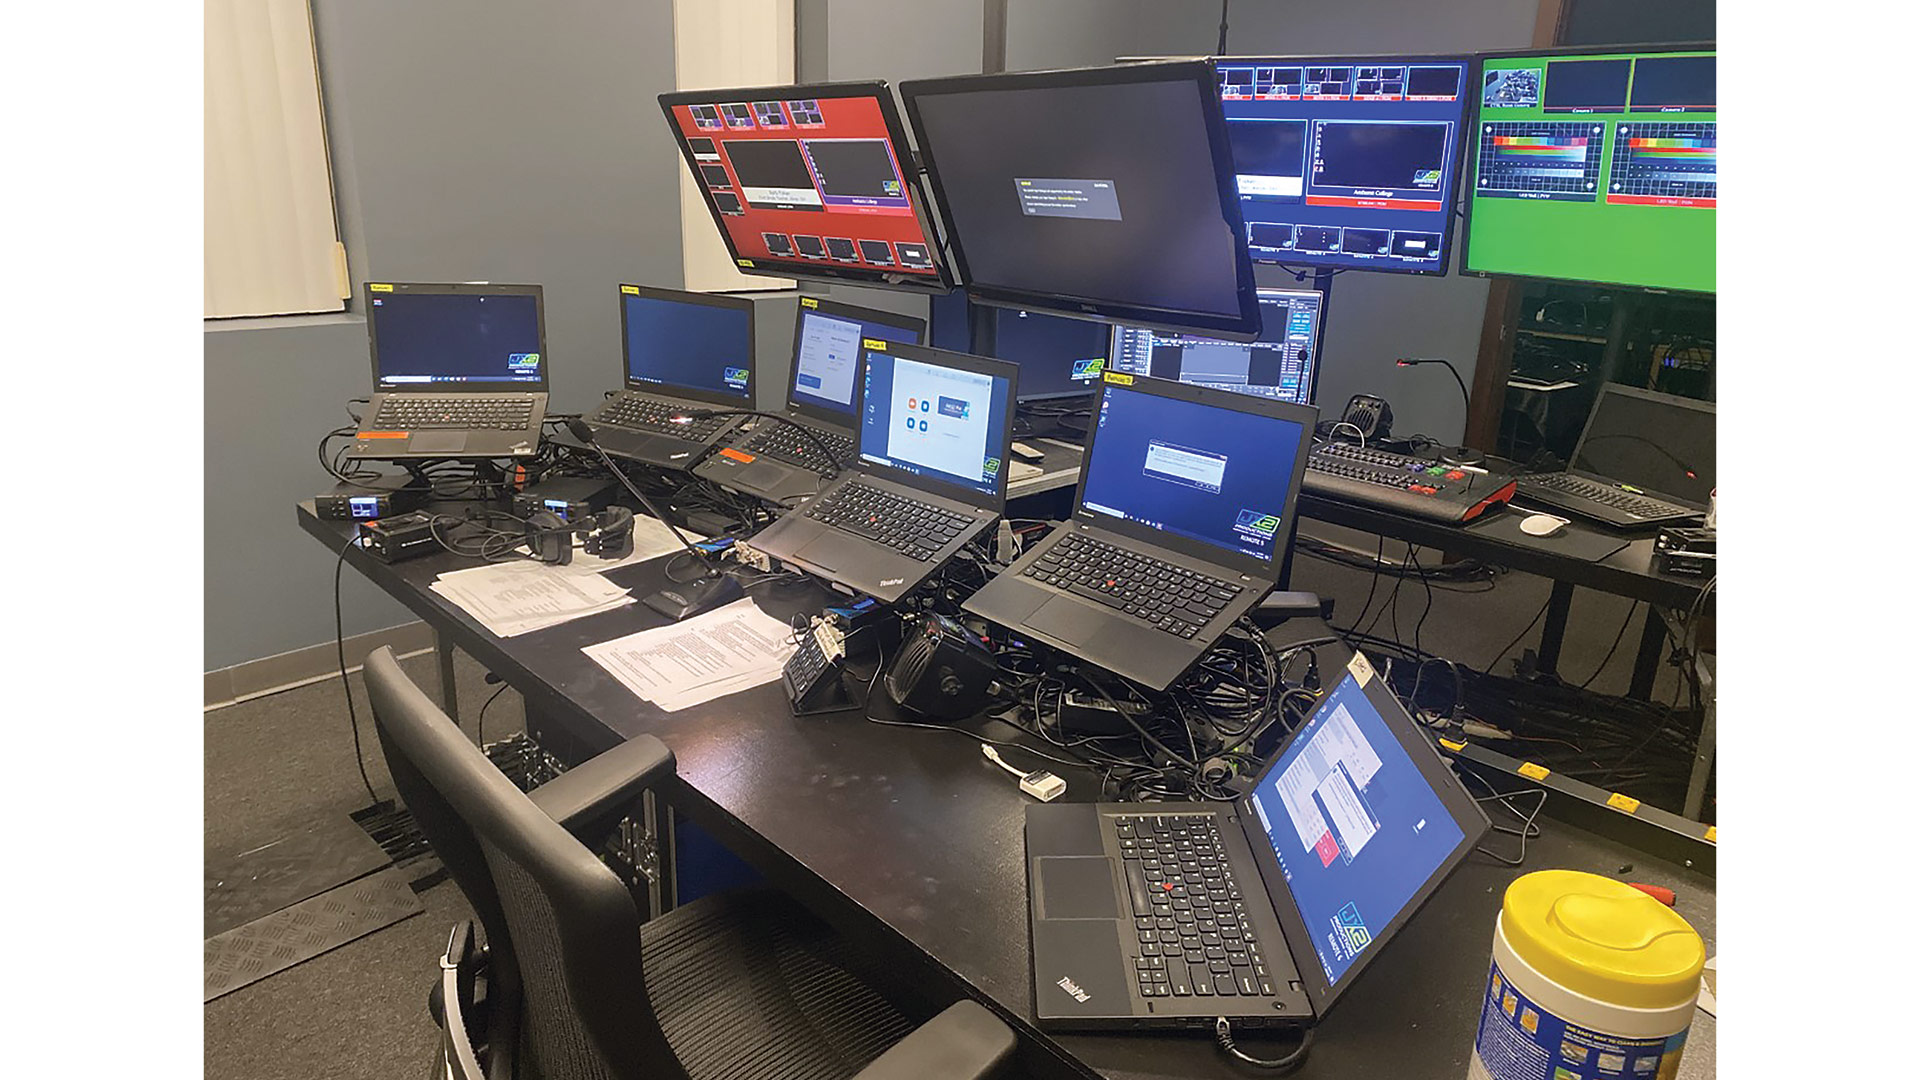 Jx2 Productions has boosted the technology in its control room